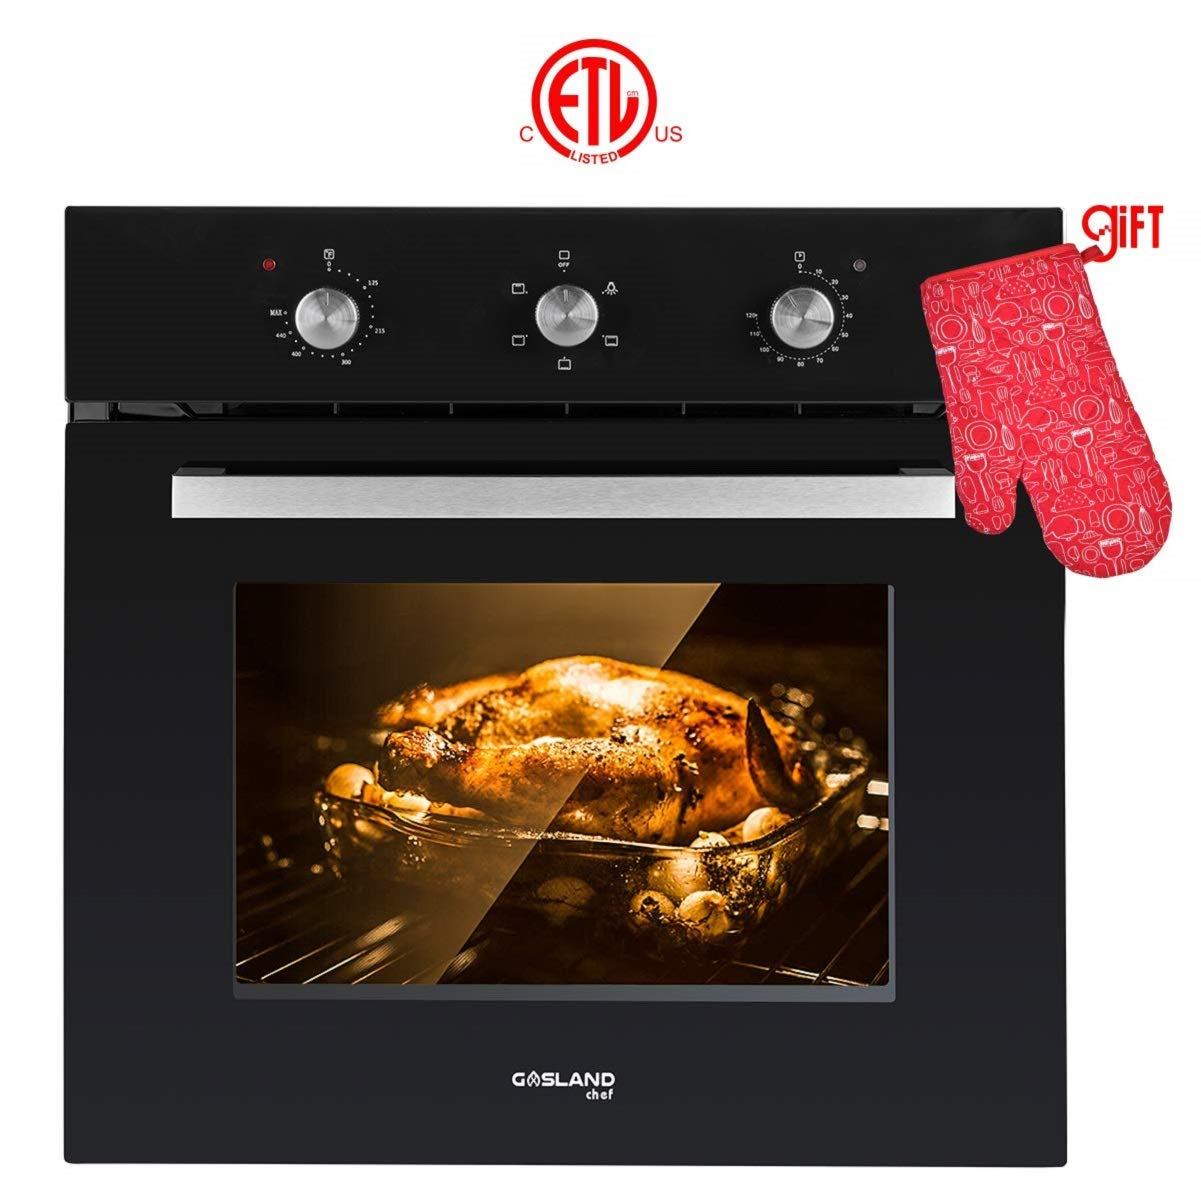 "Single Wall Oven, GASLAND Chef ES606MB 24"" Built-in Electric Wall Oven, 6 Cooking Function, Black Glass Mechanical Electric Wall Oven with Cooling Down Fan, 3 Layer Glass, ETL Safety Certified"